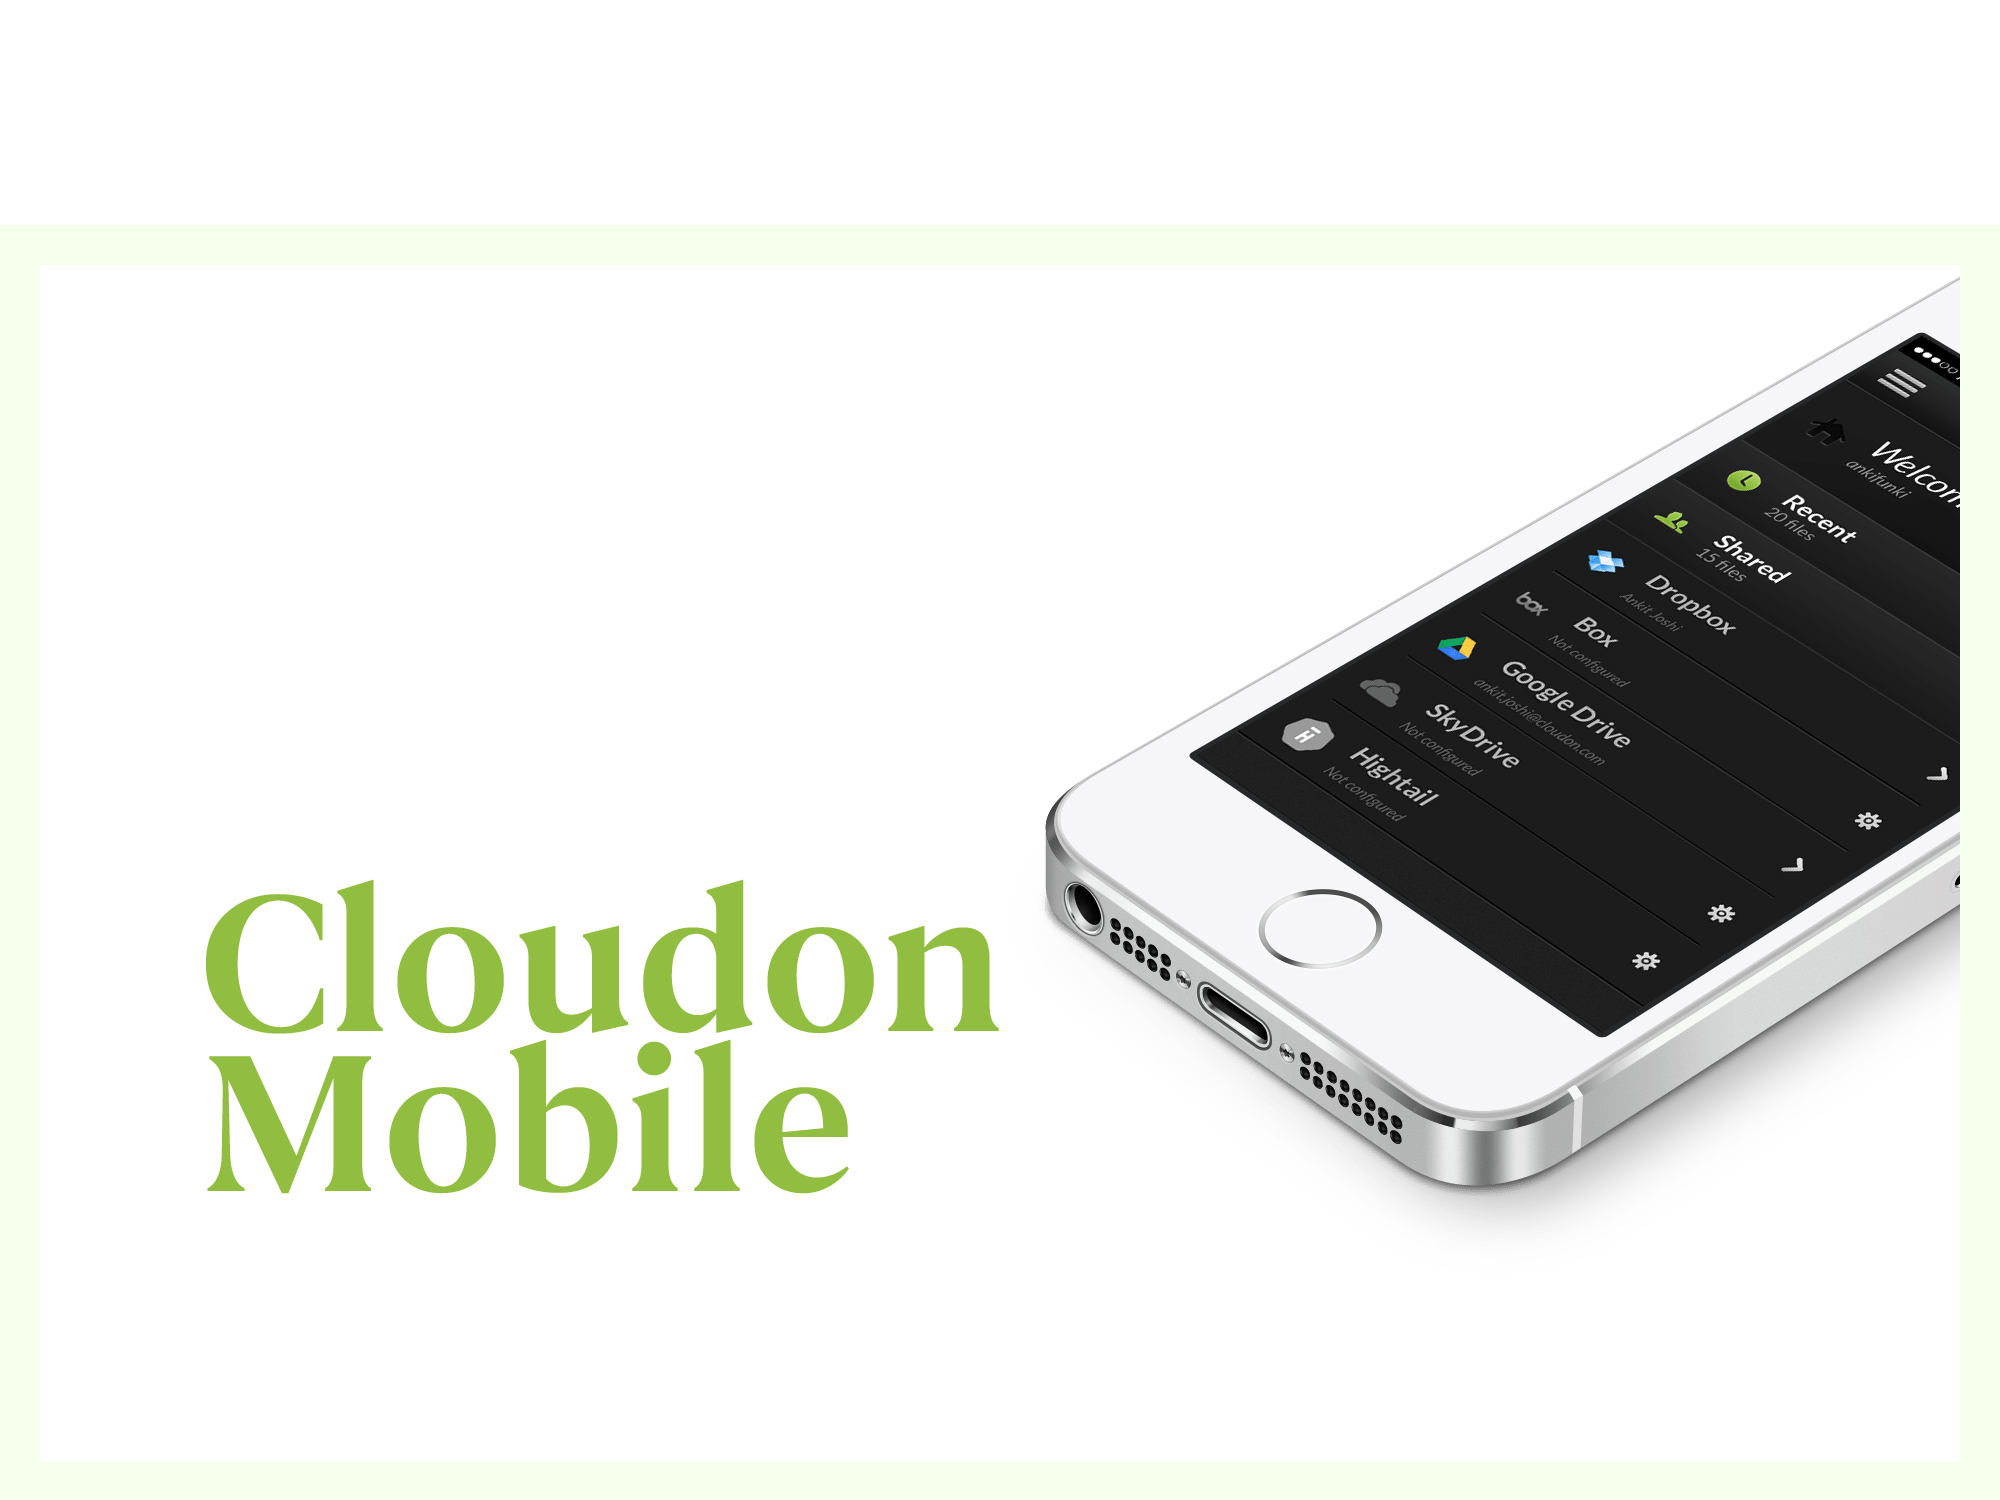 CloudOn Mobile